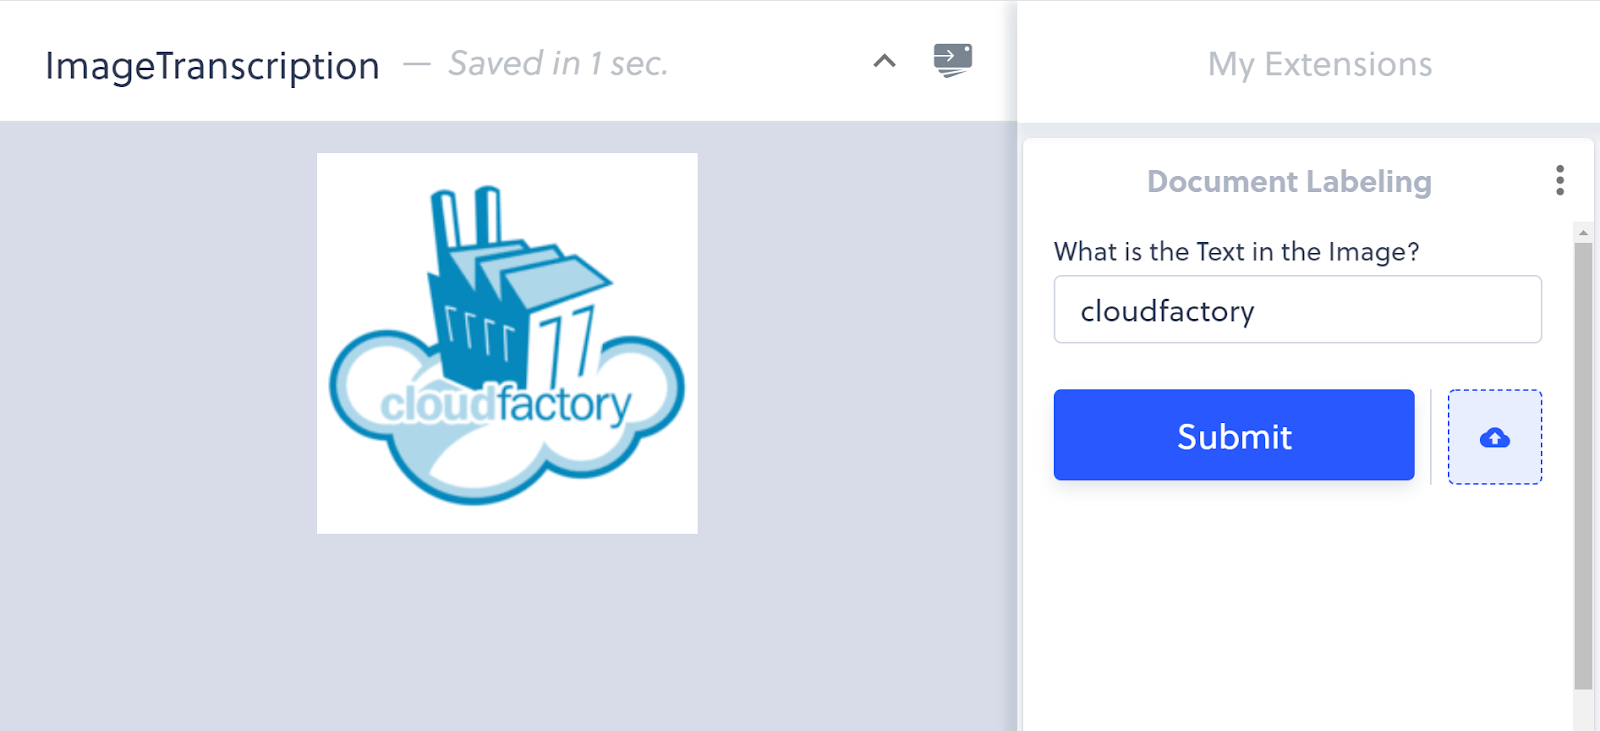 This is an example of image annotation using transcription within an annotation tool. In the image is a screenshot of an annotator's view while labeling an image using transcription. The text in the image is the object of interest. On the left is a corporate logo that is a drawing of a factory sitting on a cloud. The word 'CloudFactory' is printed across the cloud. The annotator has identified the text in the image with the word 'CloudFactory.'